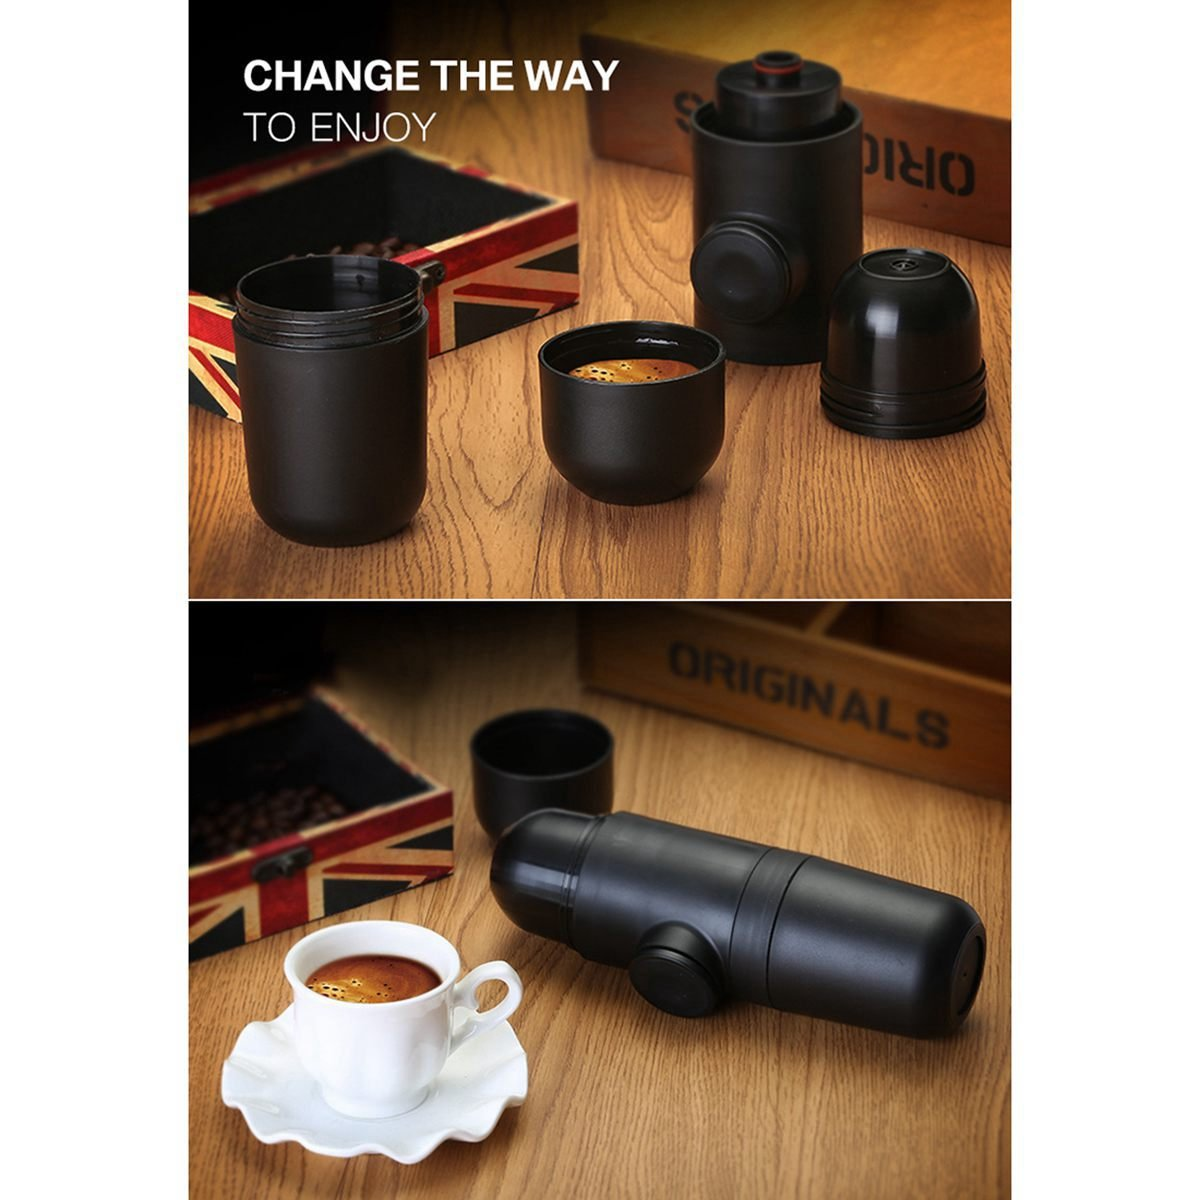 Toogoo Portable Espresso Maker by Handheld Travel Coffee Maker with An Additional Filter Basket